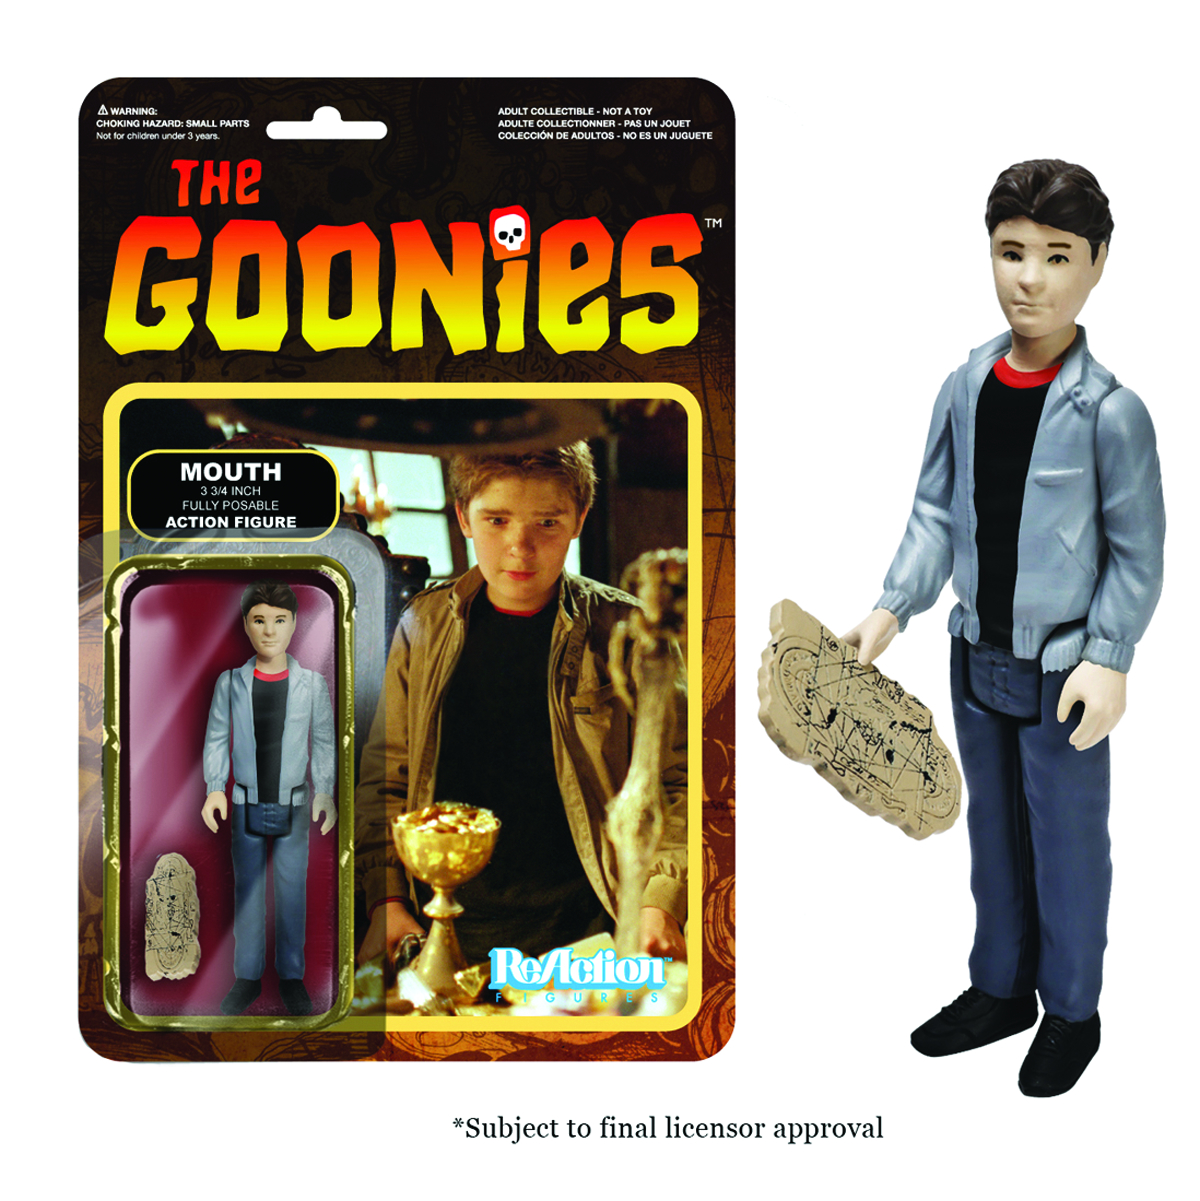 REACTION GOONIES MOUTH FIG